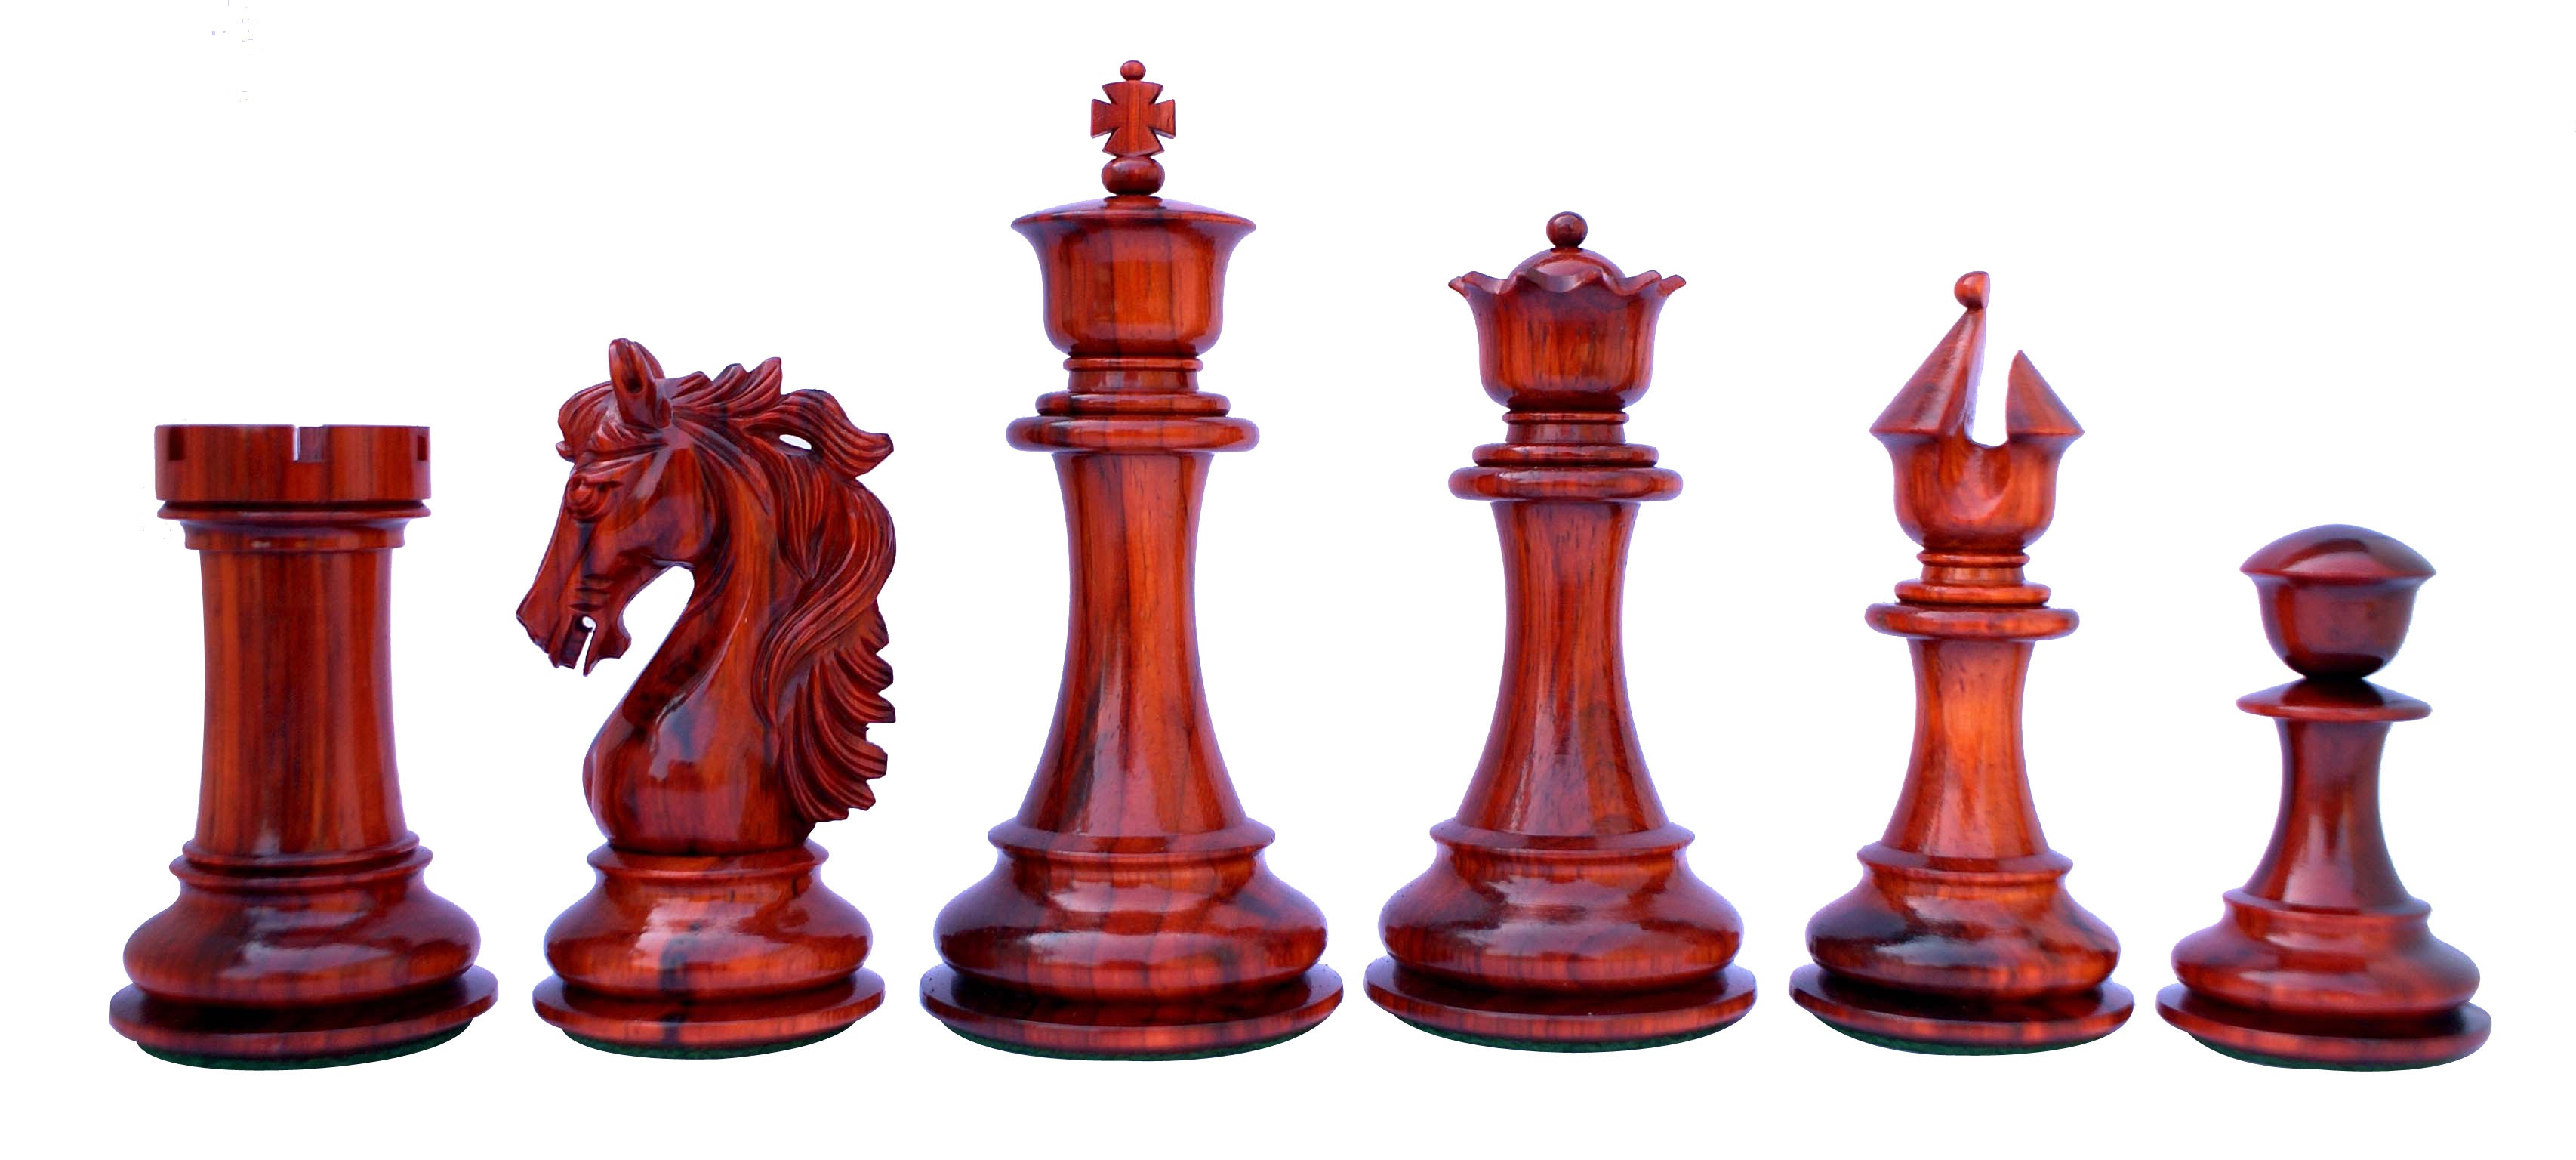 "Heritage Series 4.4"" Premium Staunton Chess Set"